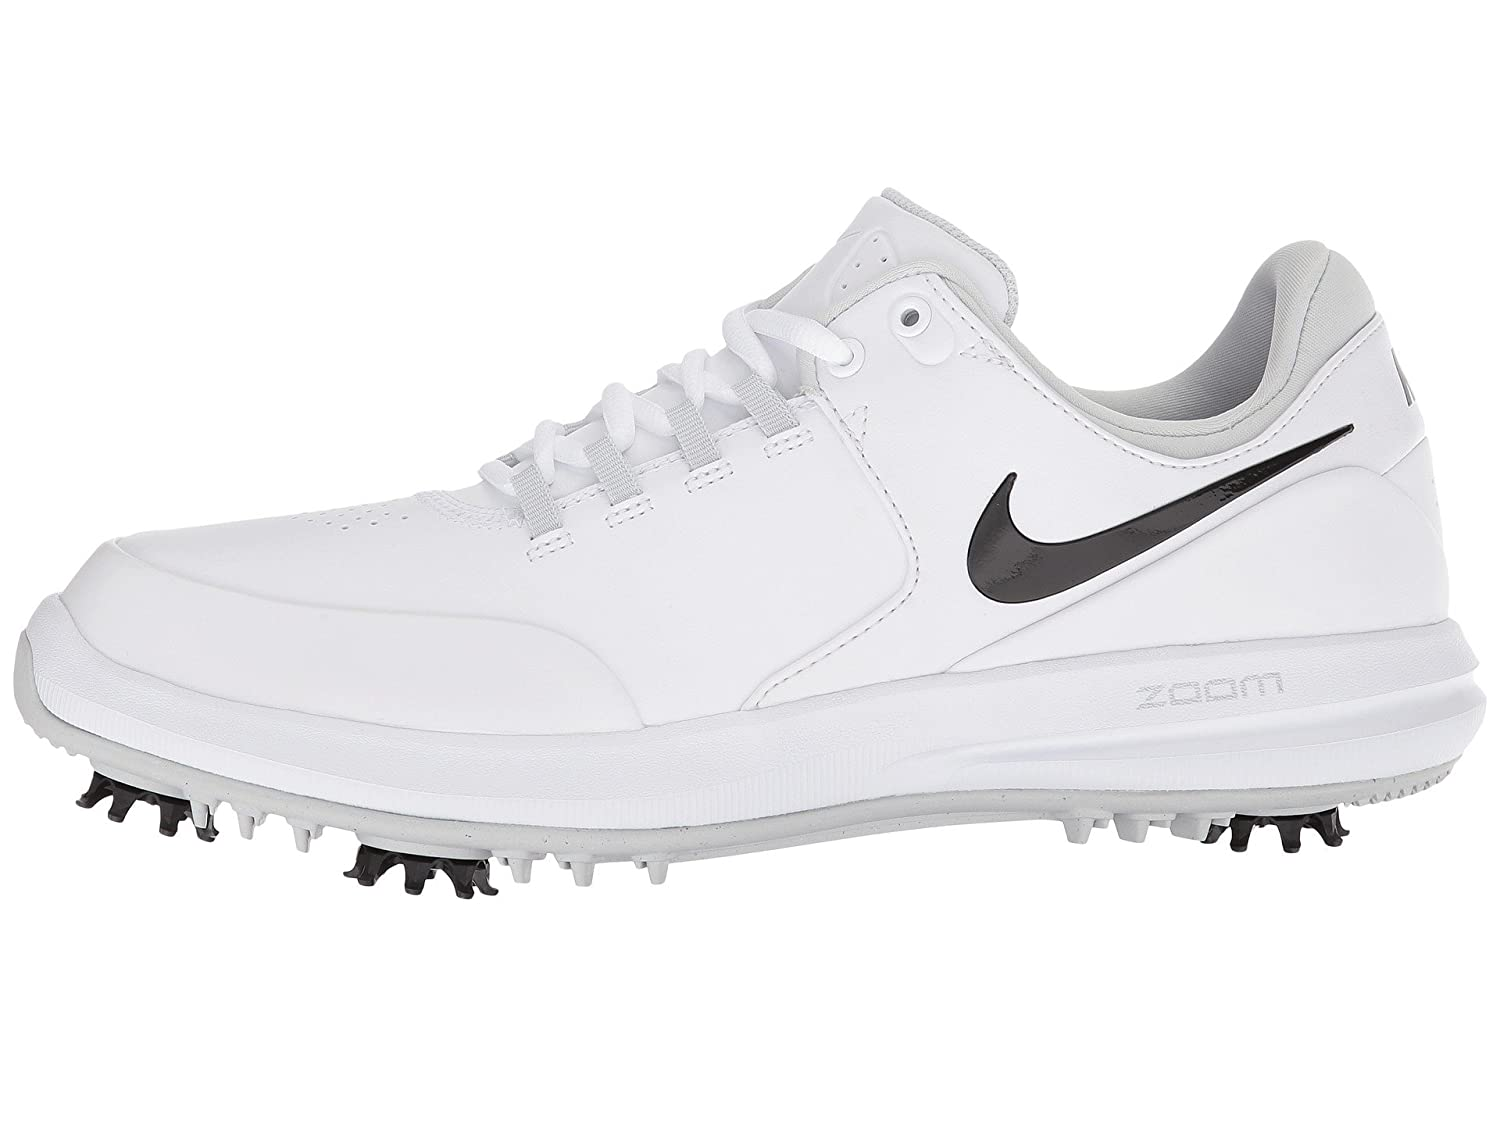 fc085d8c0de02 NIKE Women s WMNS Air Zoom Accurate Golf Shoes  Amazon.co.uk  Shoes   Bags